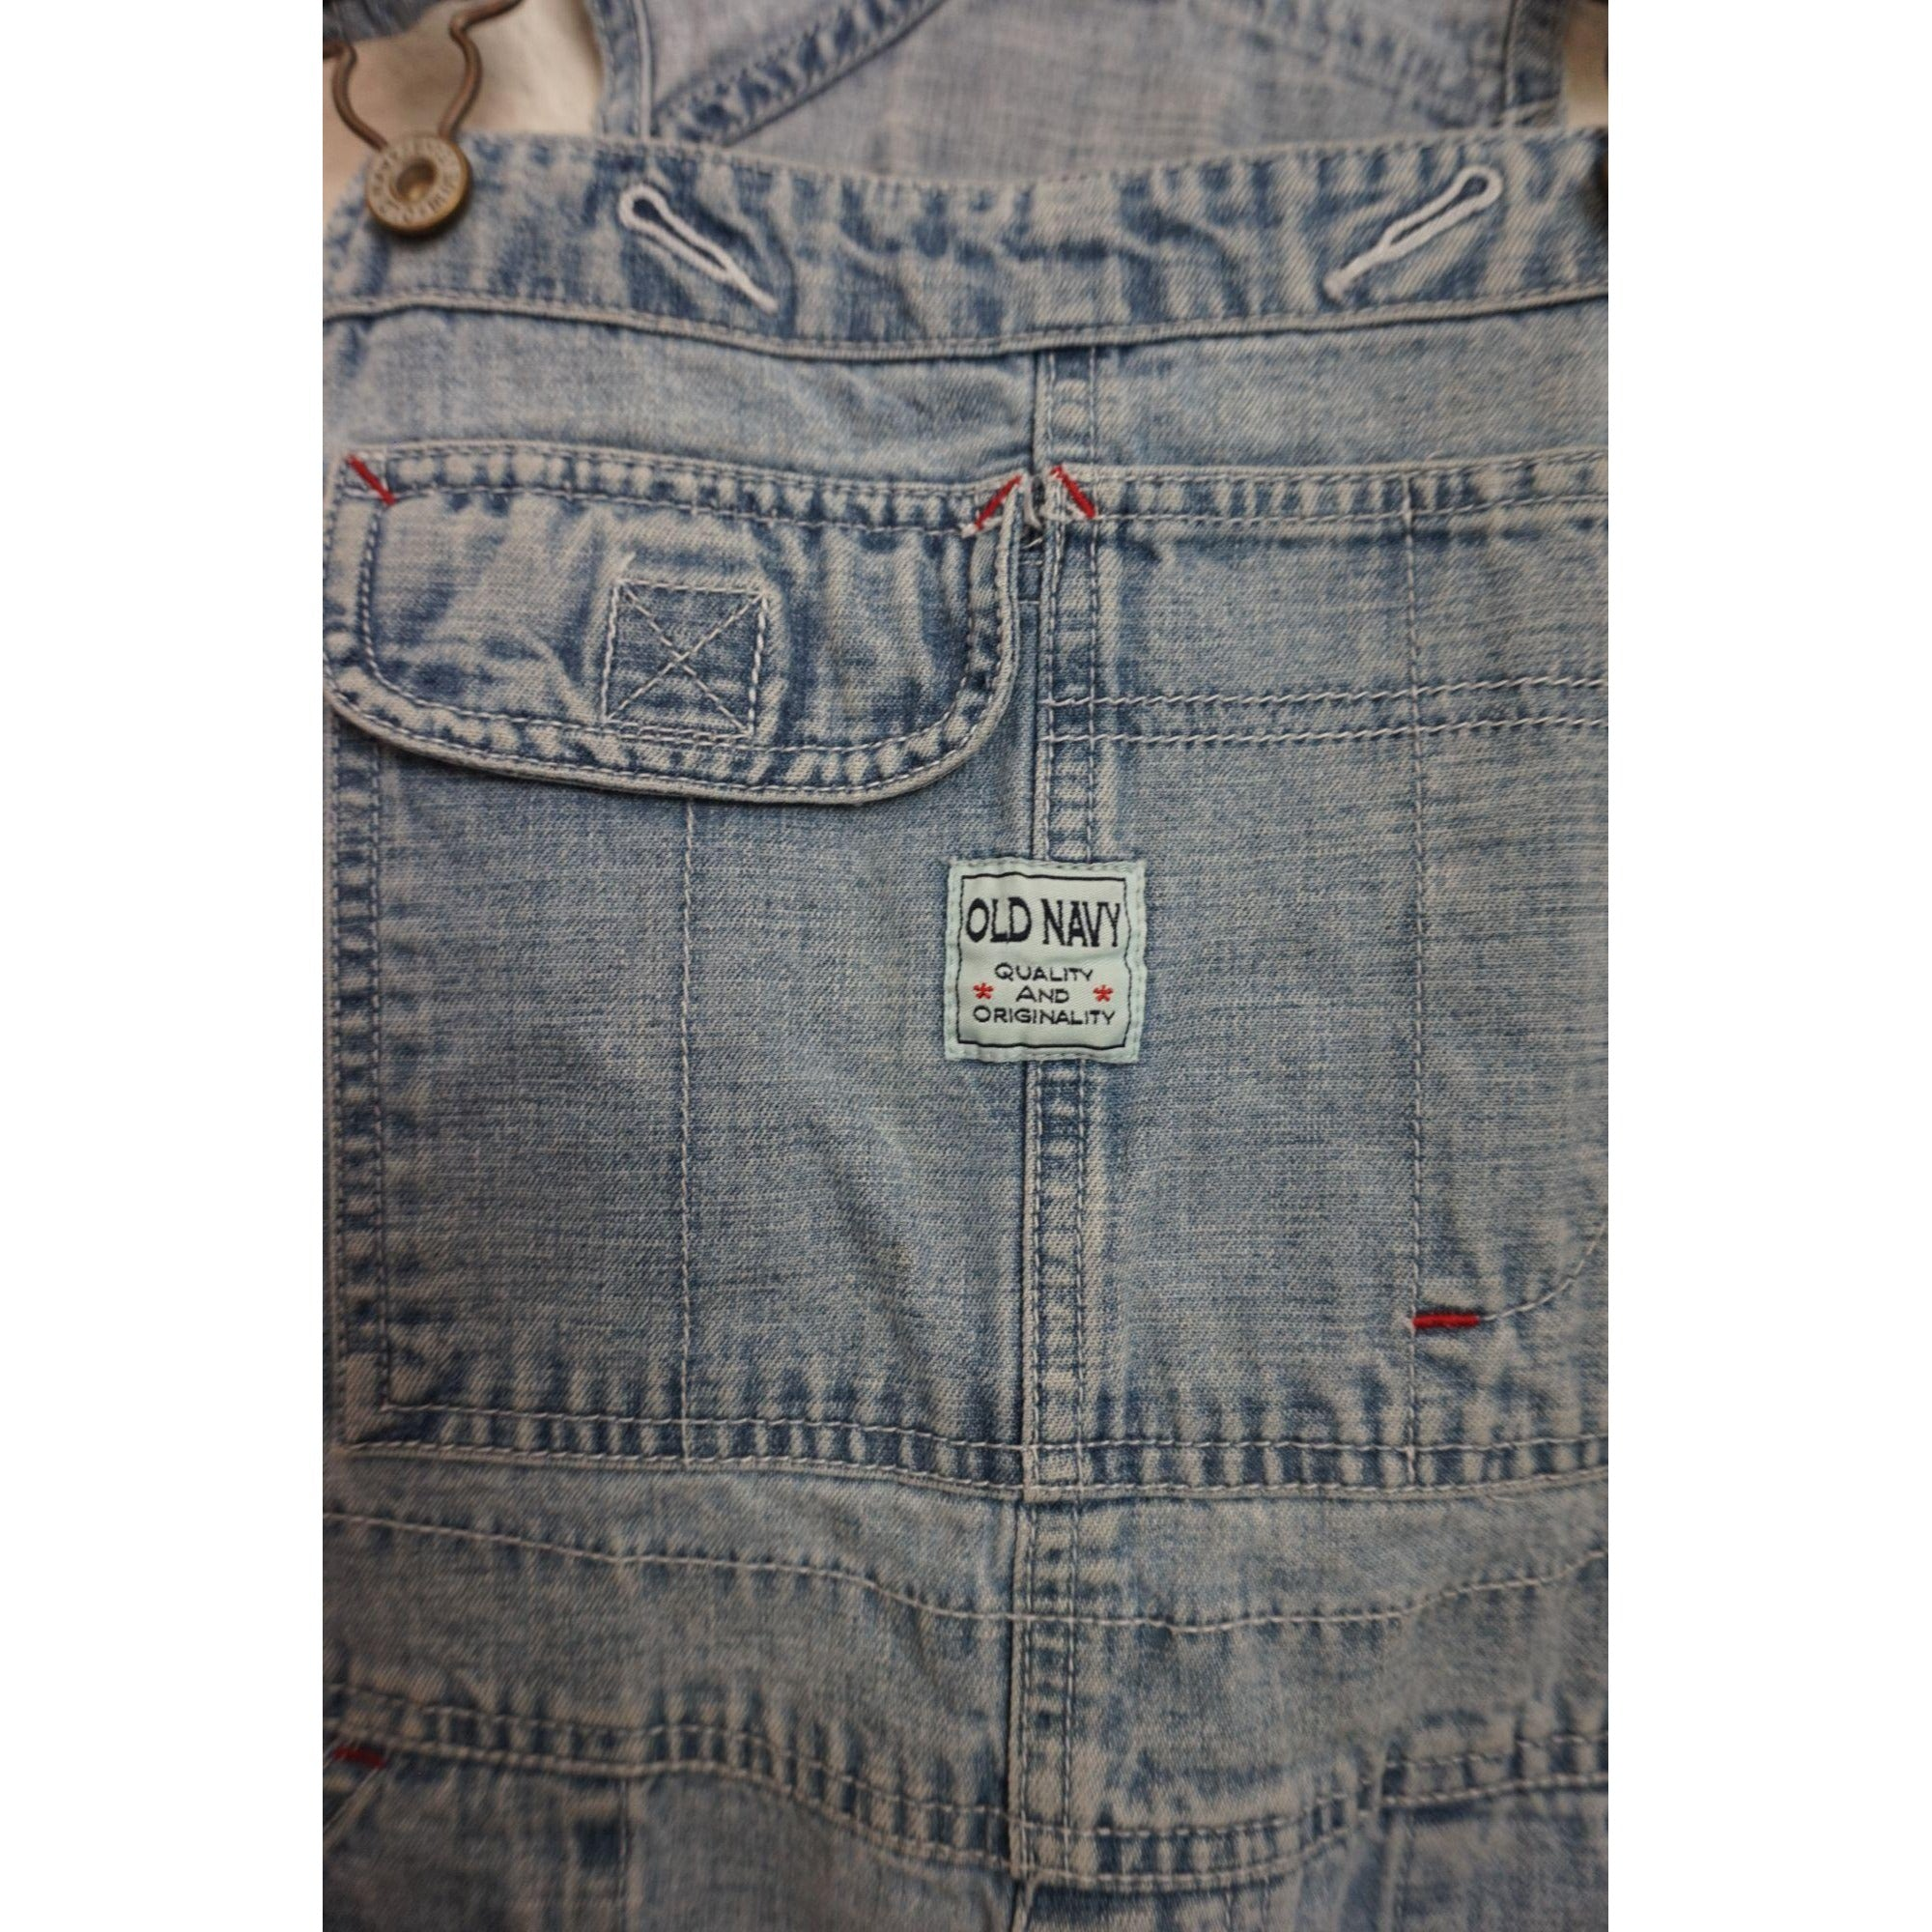 Old Navy overall denim shorts size M